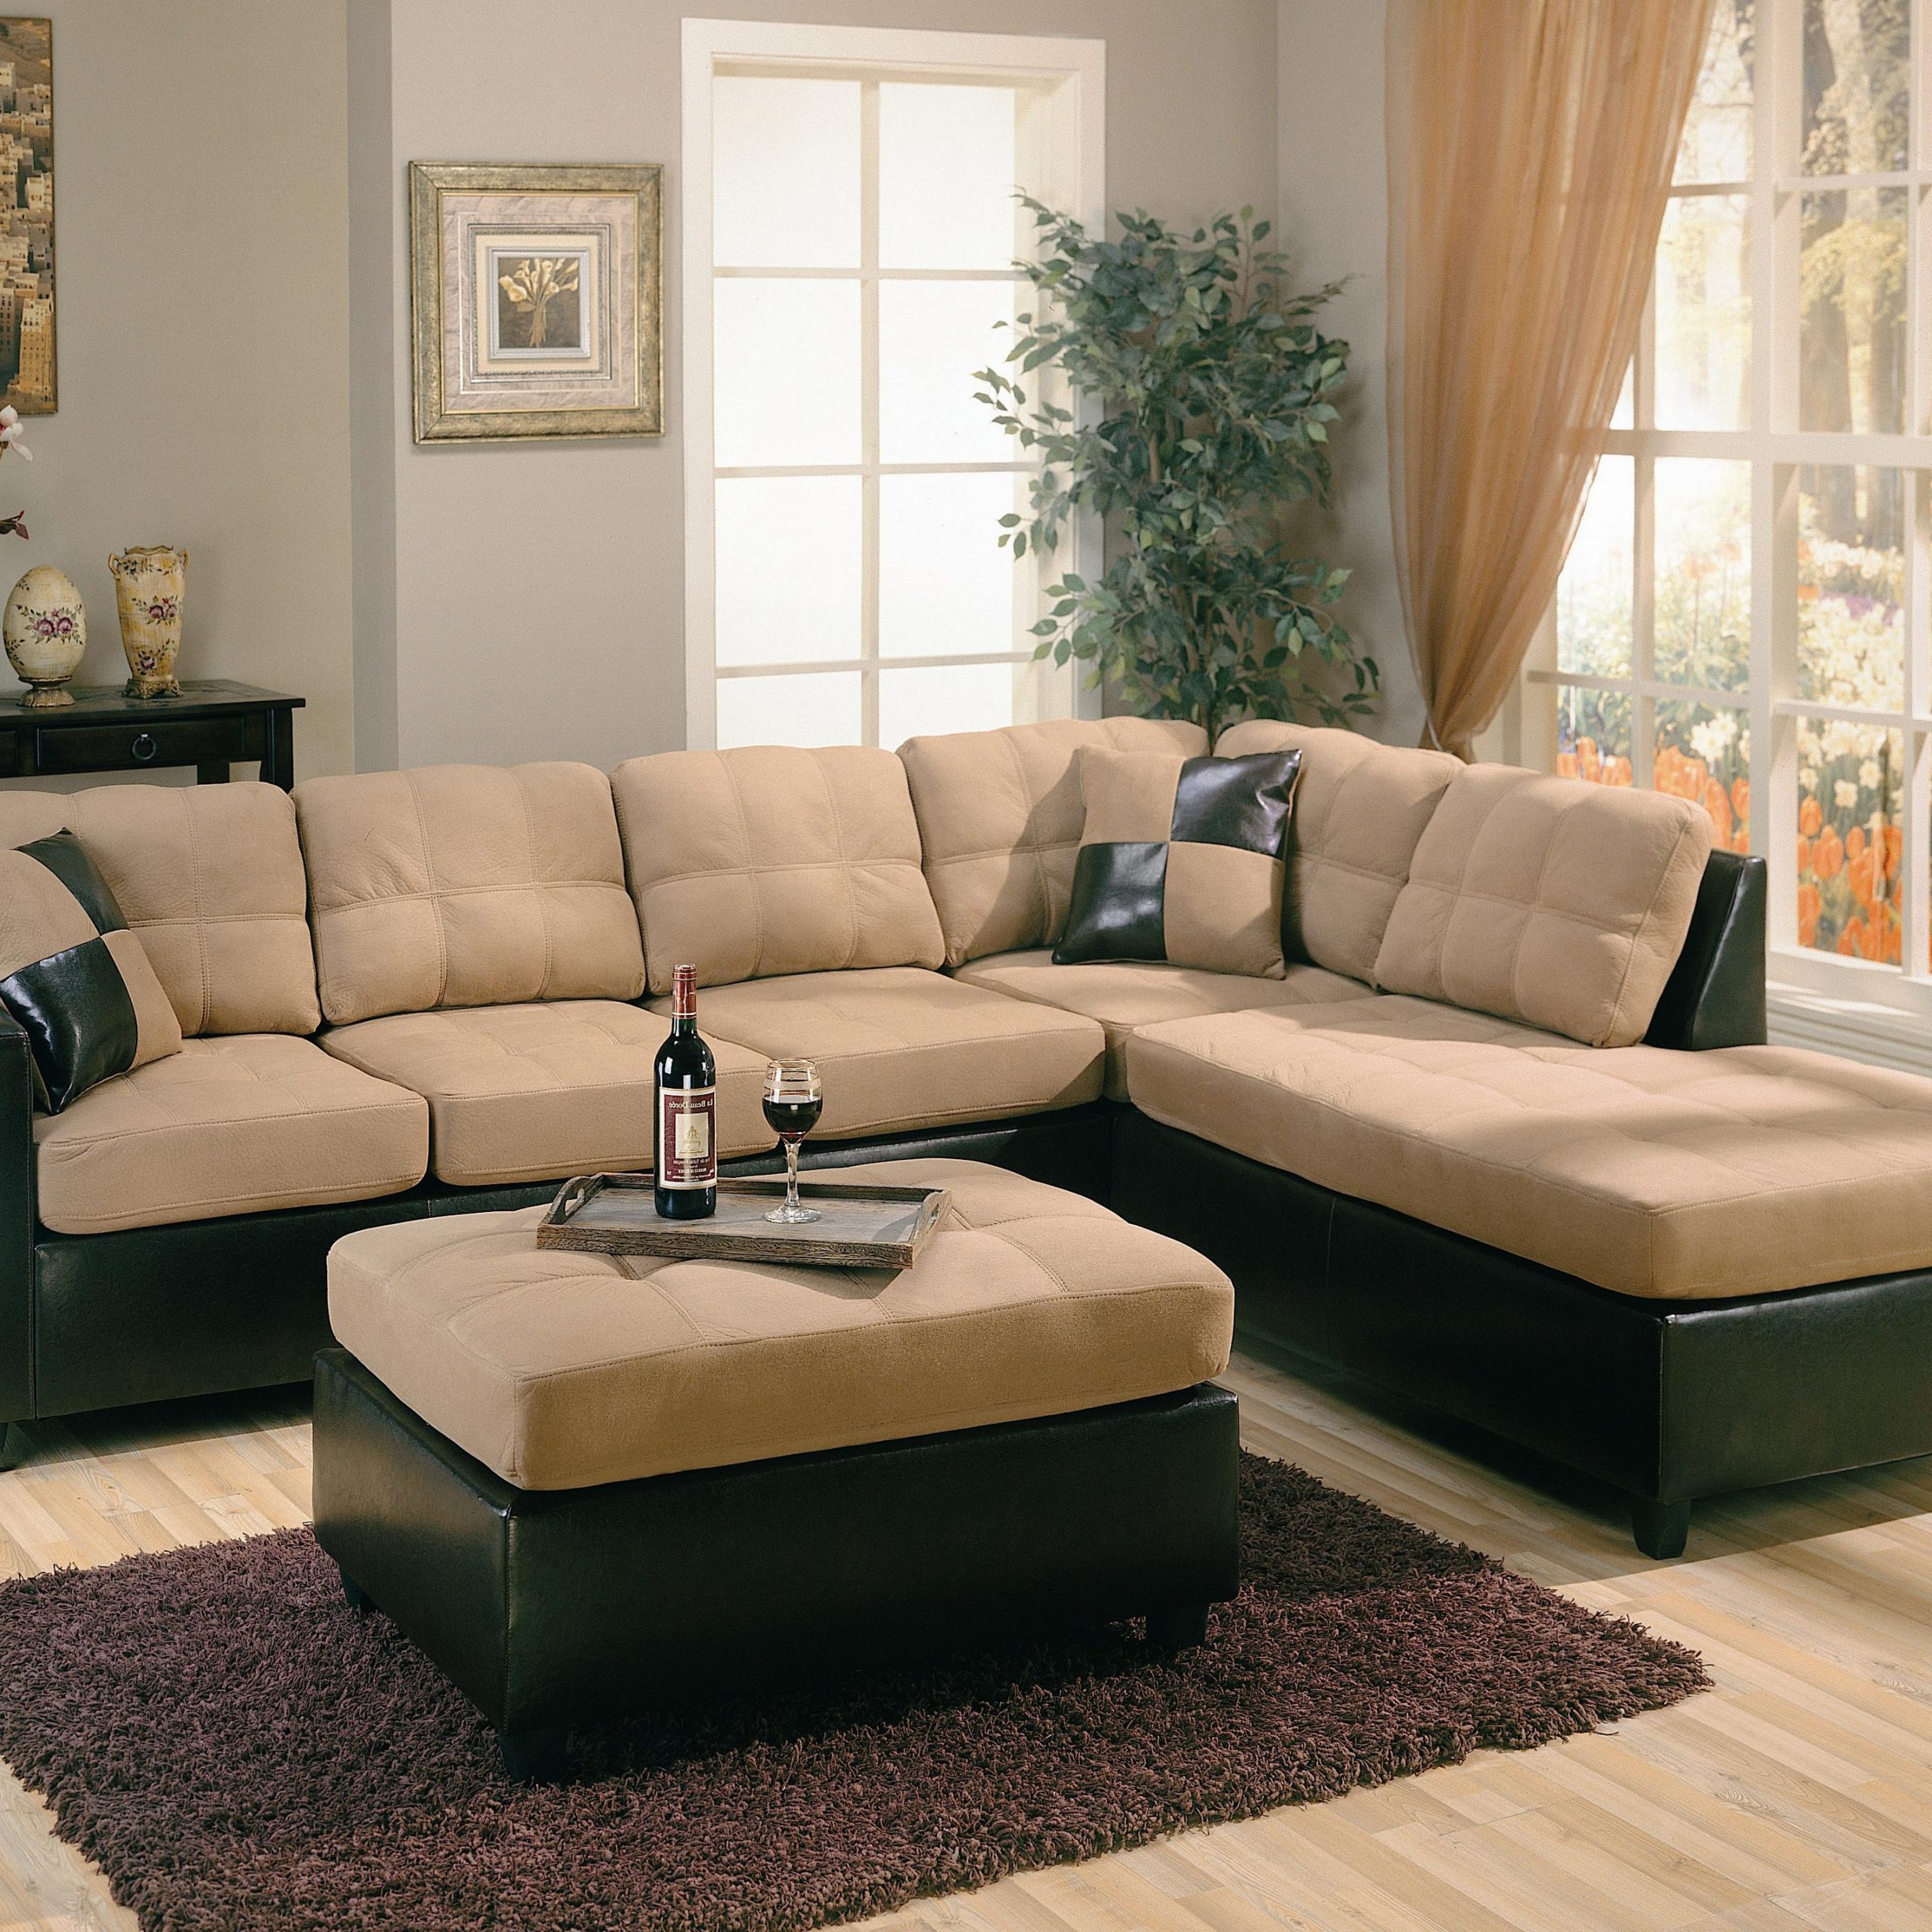 Page Title For Bonded Leather All In One Sectional Sofas With Ottoman And 2 Pillows Brown (View 8 of 15)